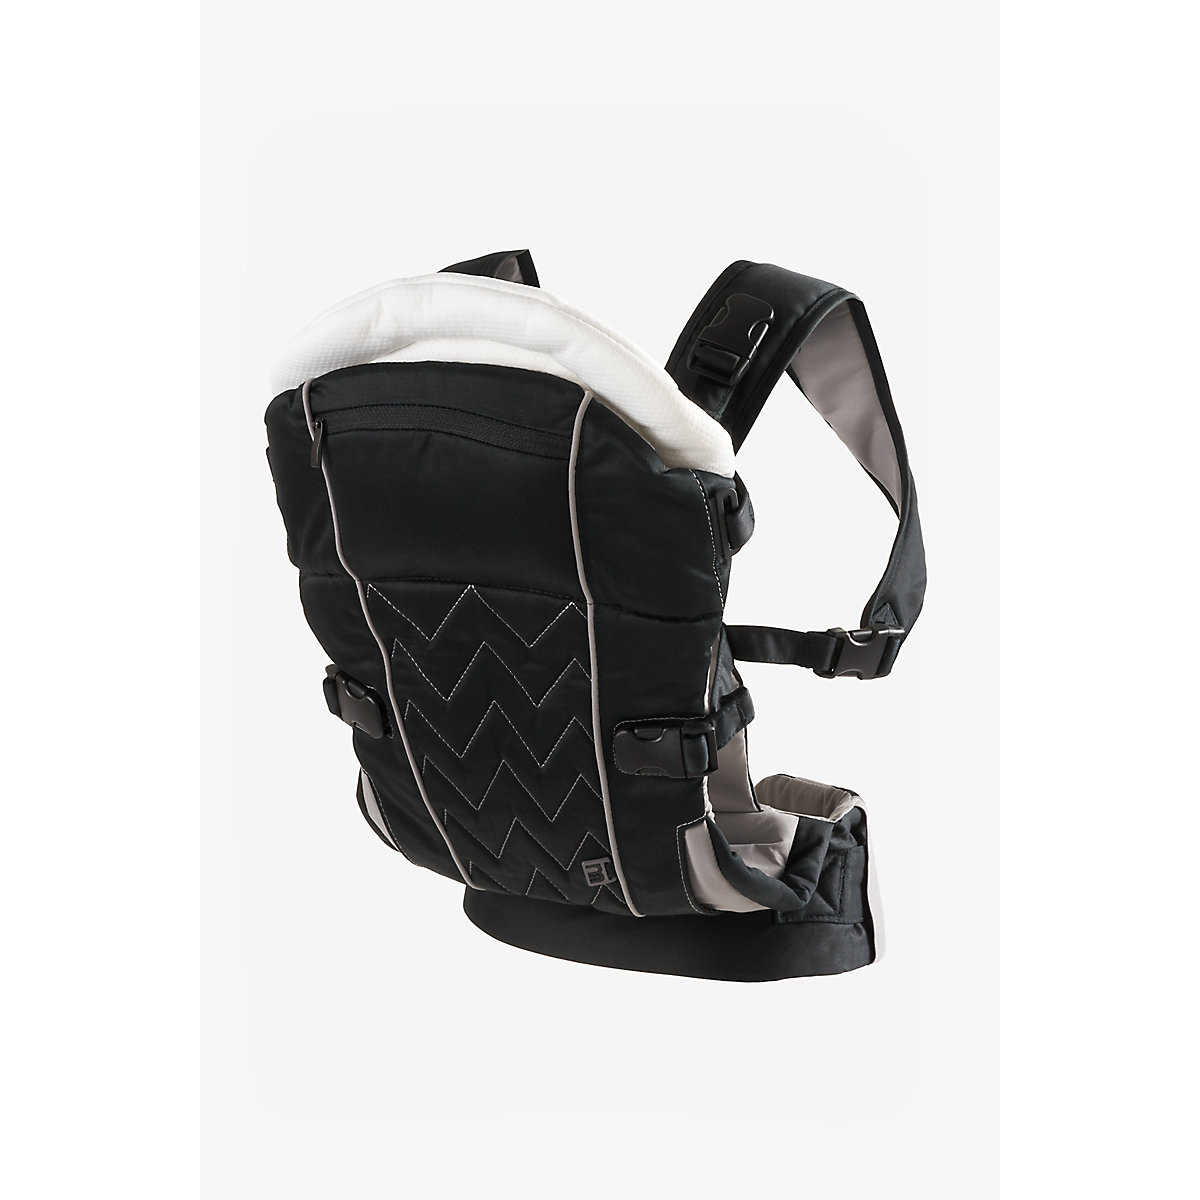 bccdfdd4431 mothercare 4 position baby carrier - black